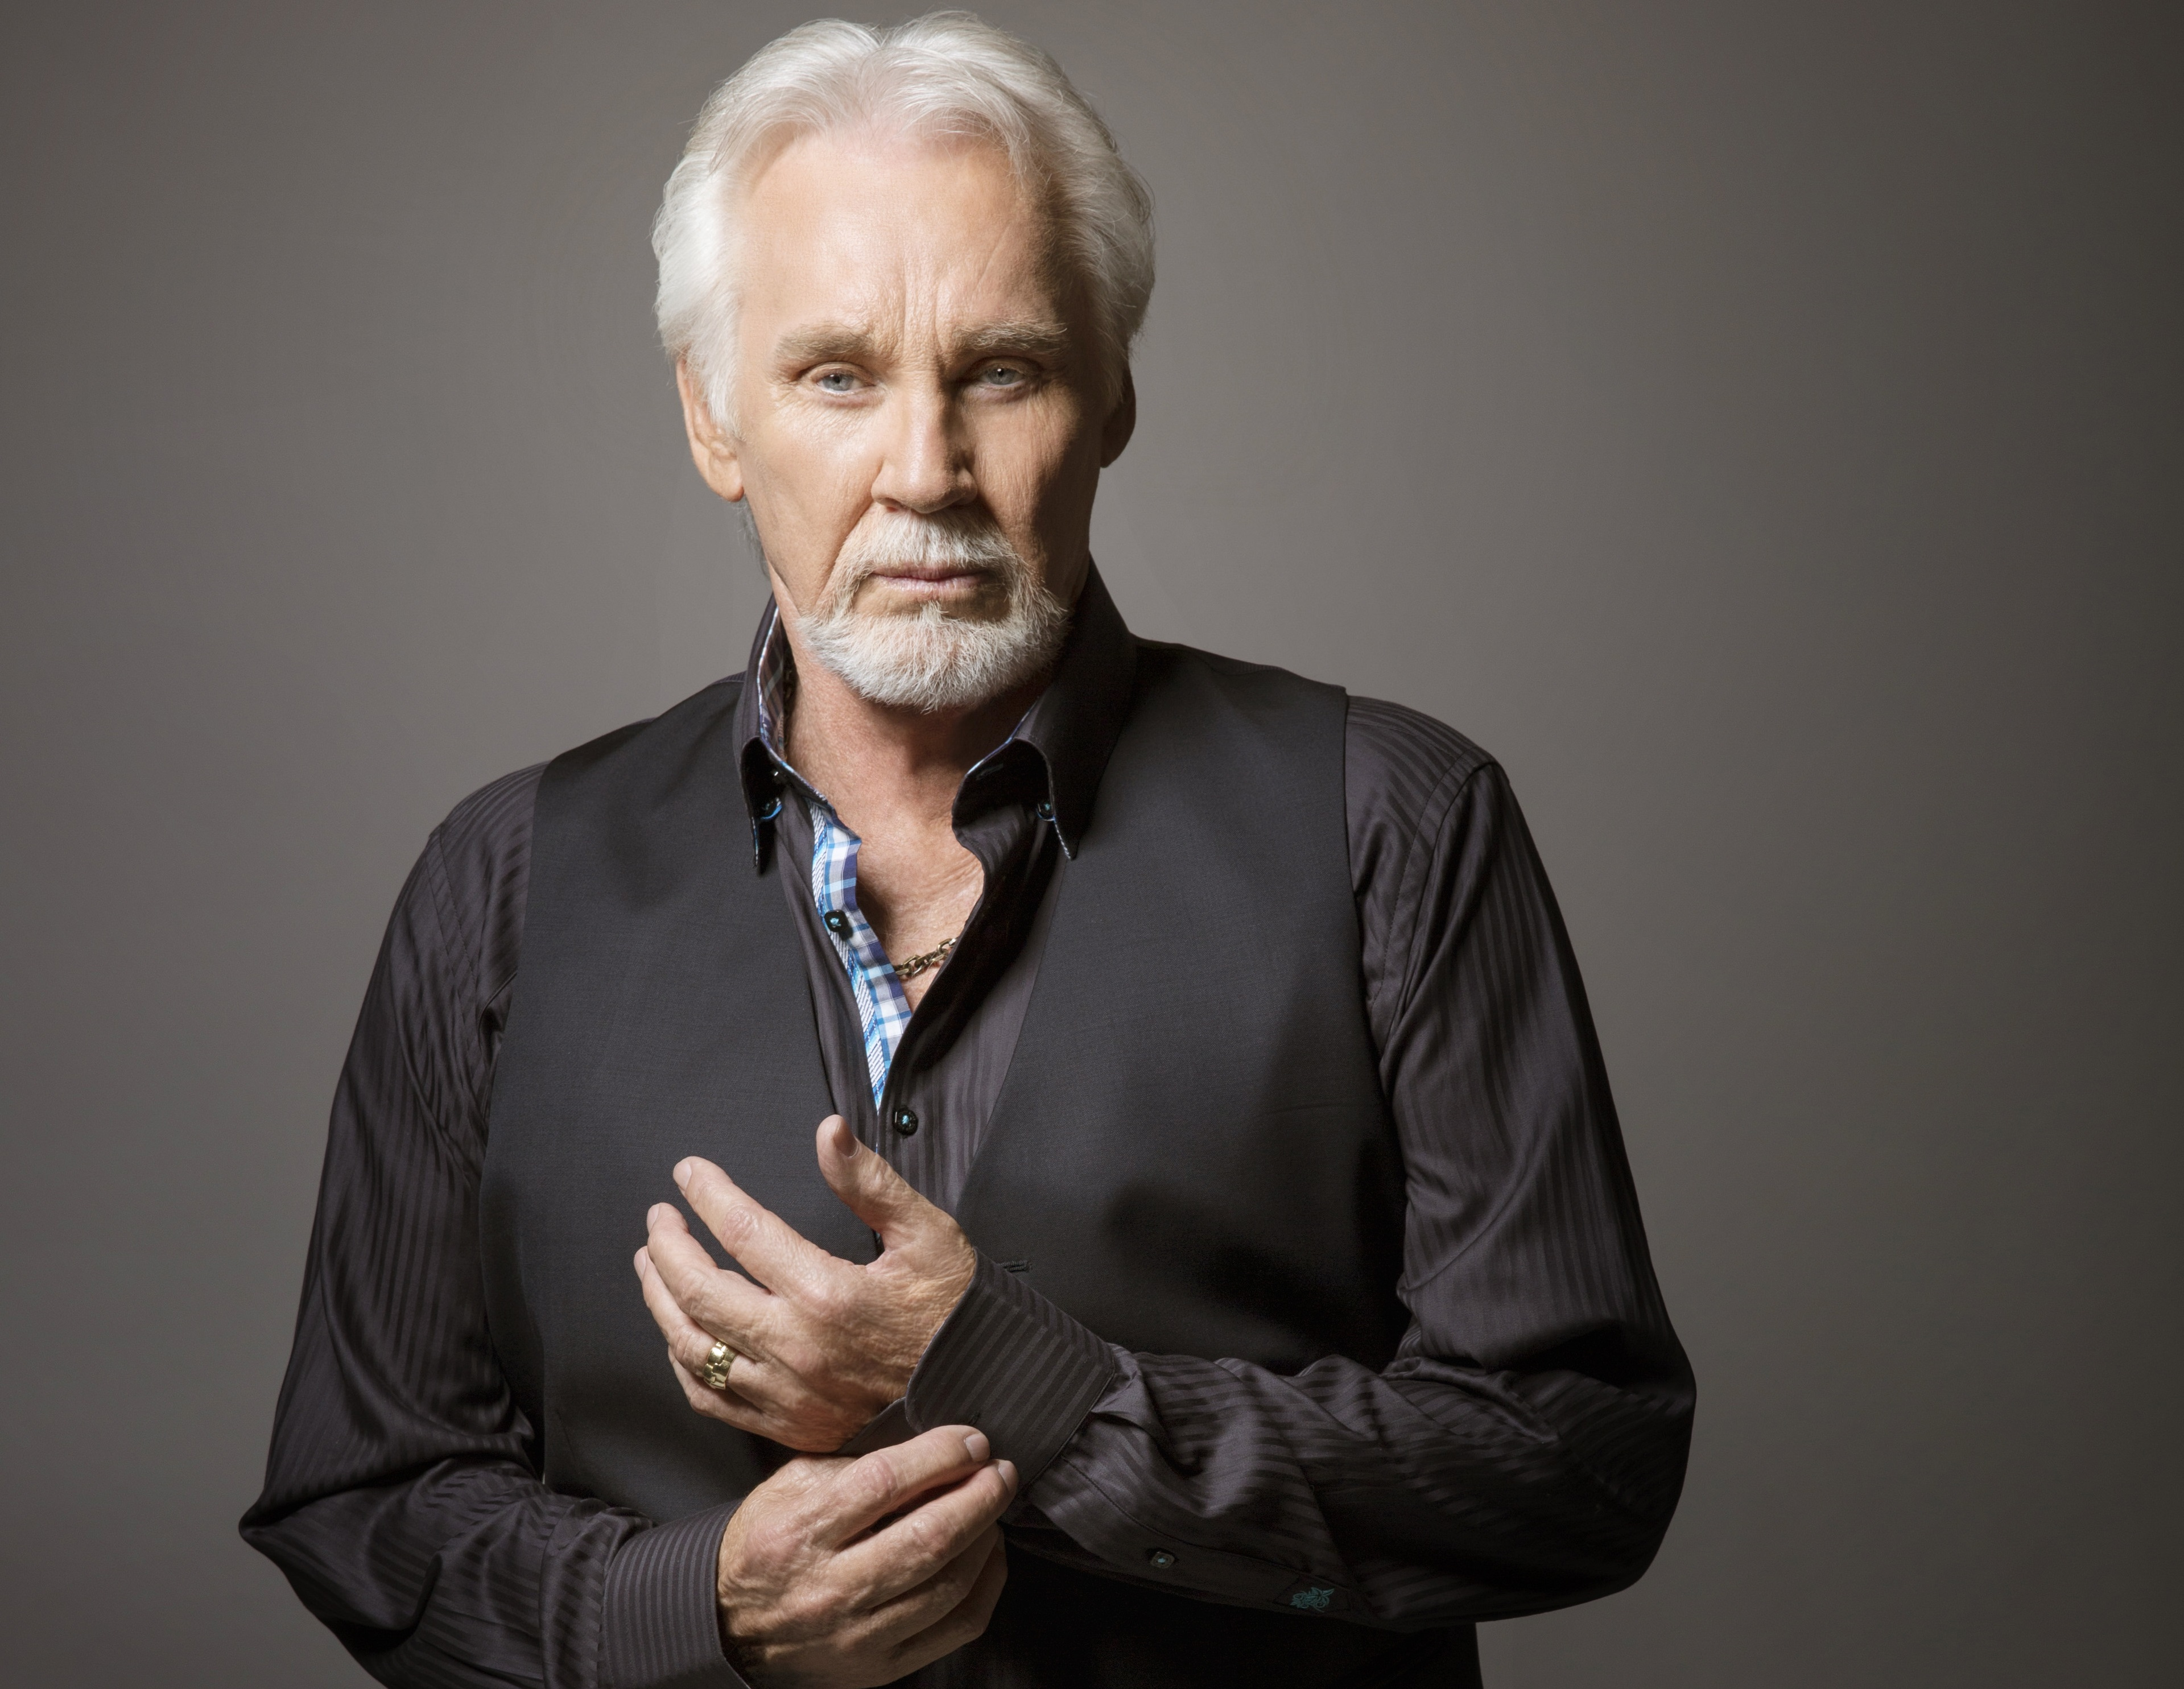 ZEMŘELA VELIKÁ LEGENDA COUNTRY KENNY ROGERS